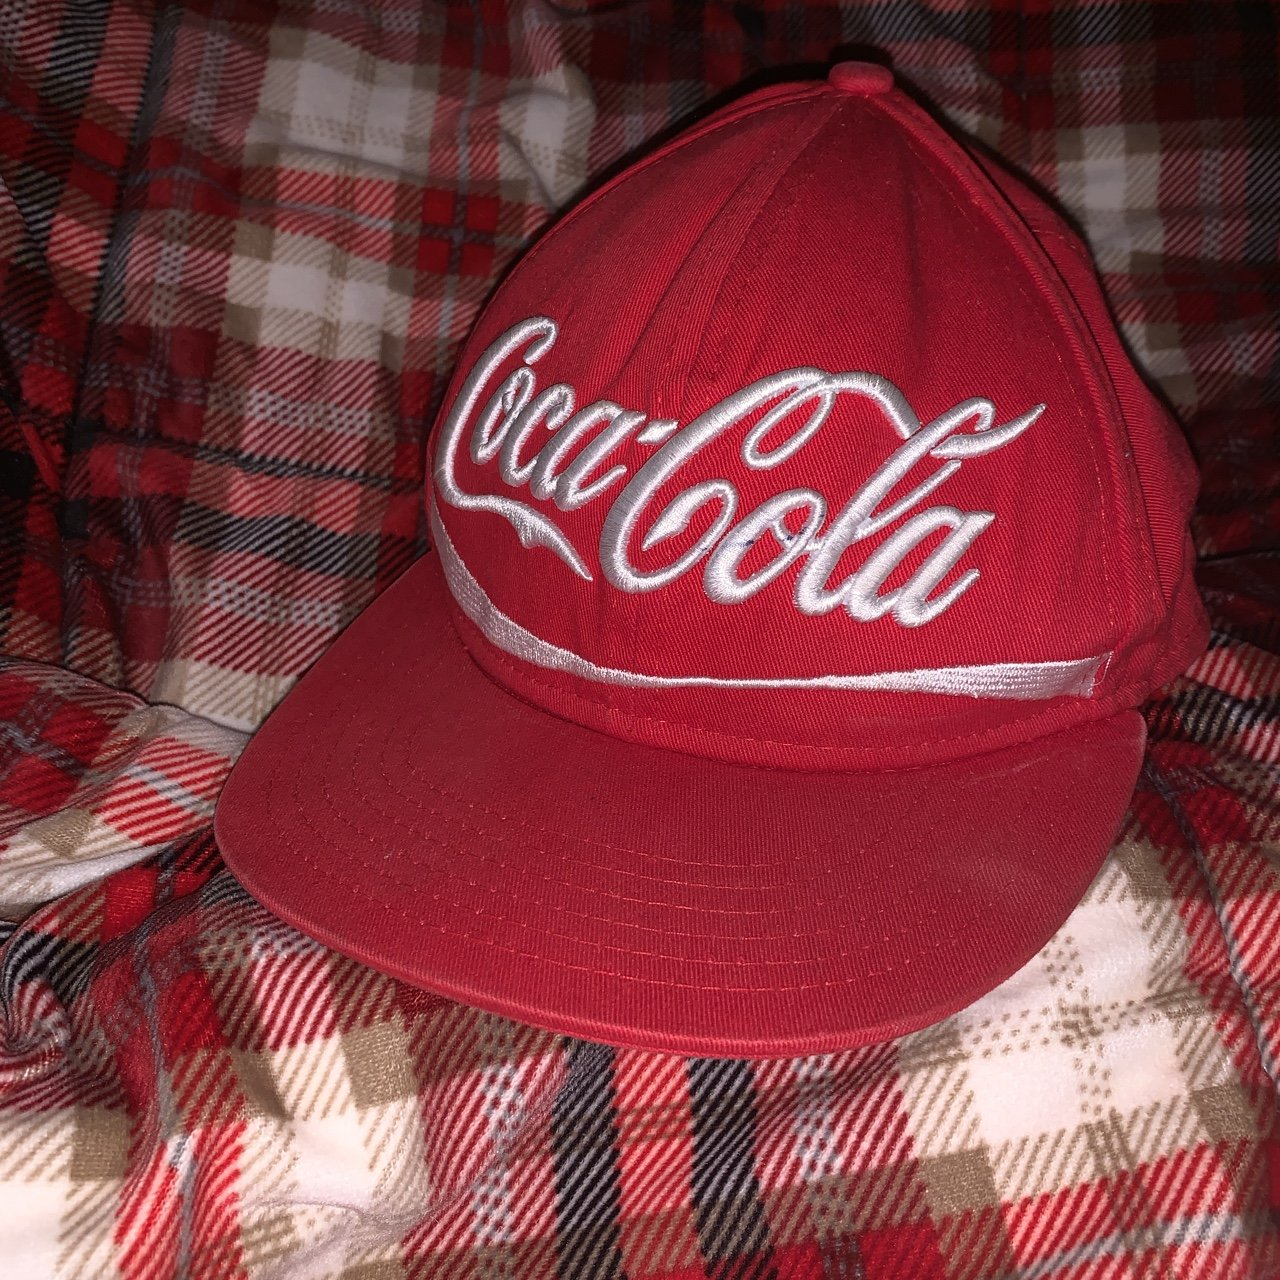 ad8a92b96ca Coca Cola snapback. Good condition. - Depop